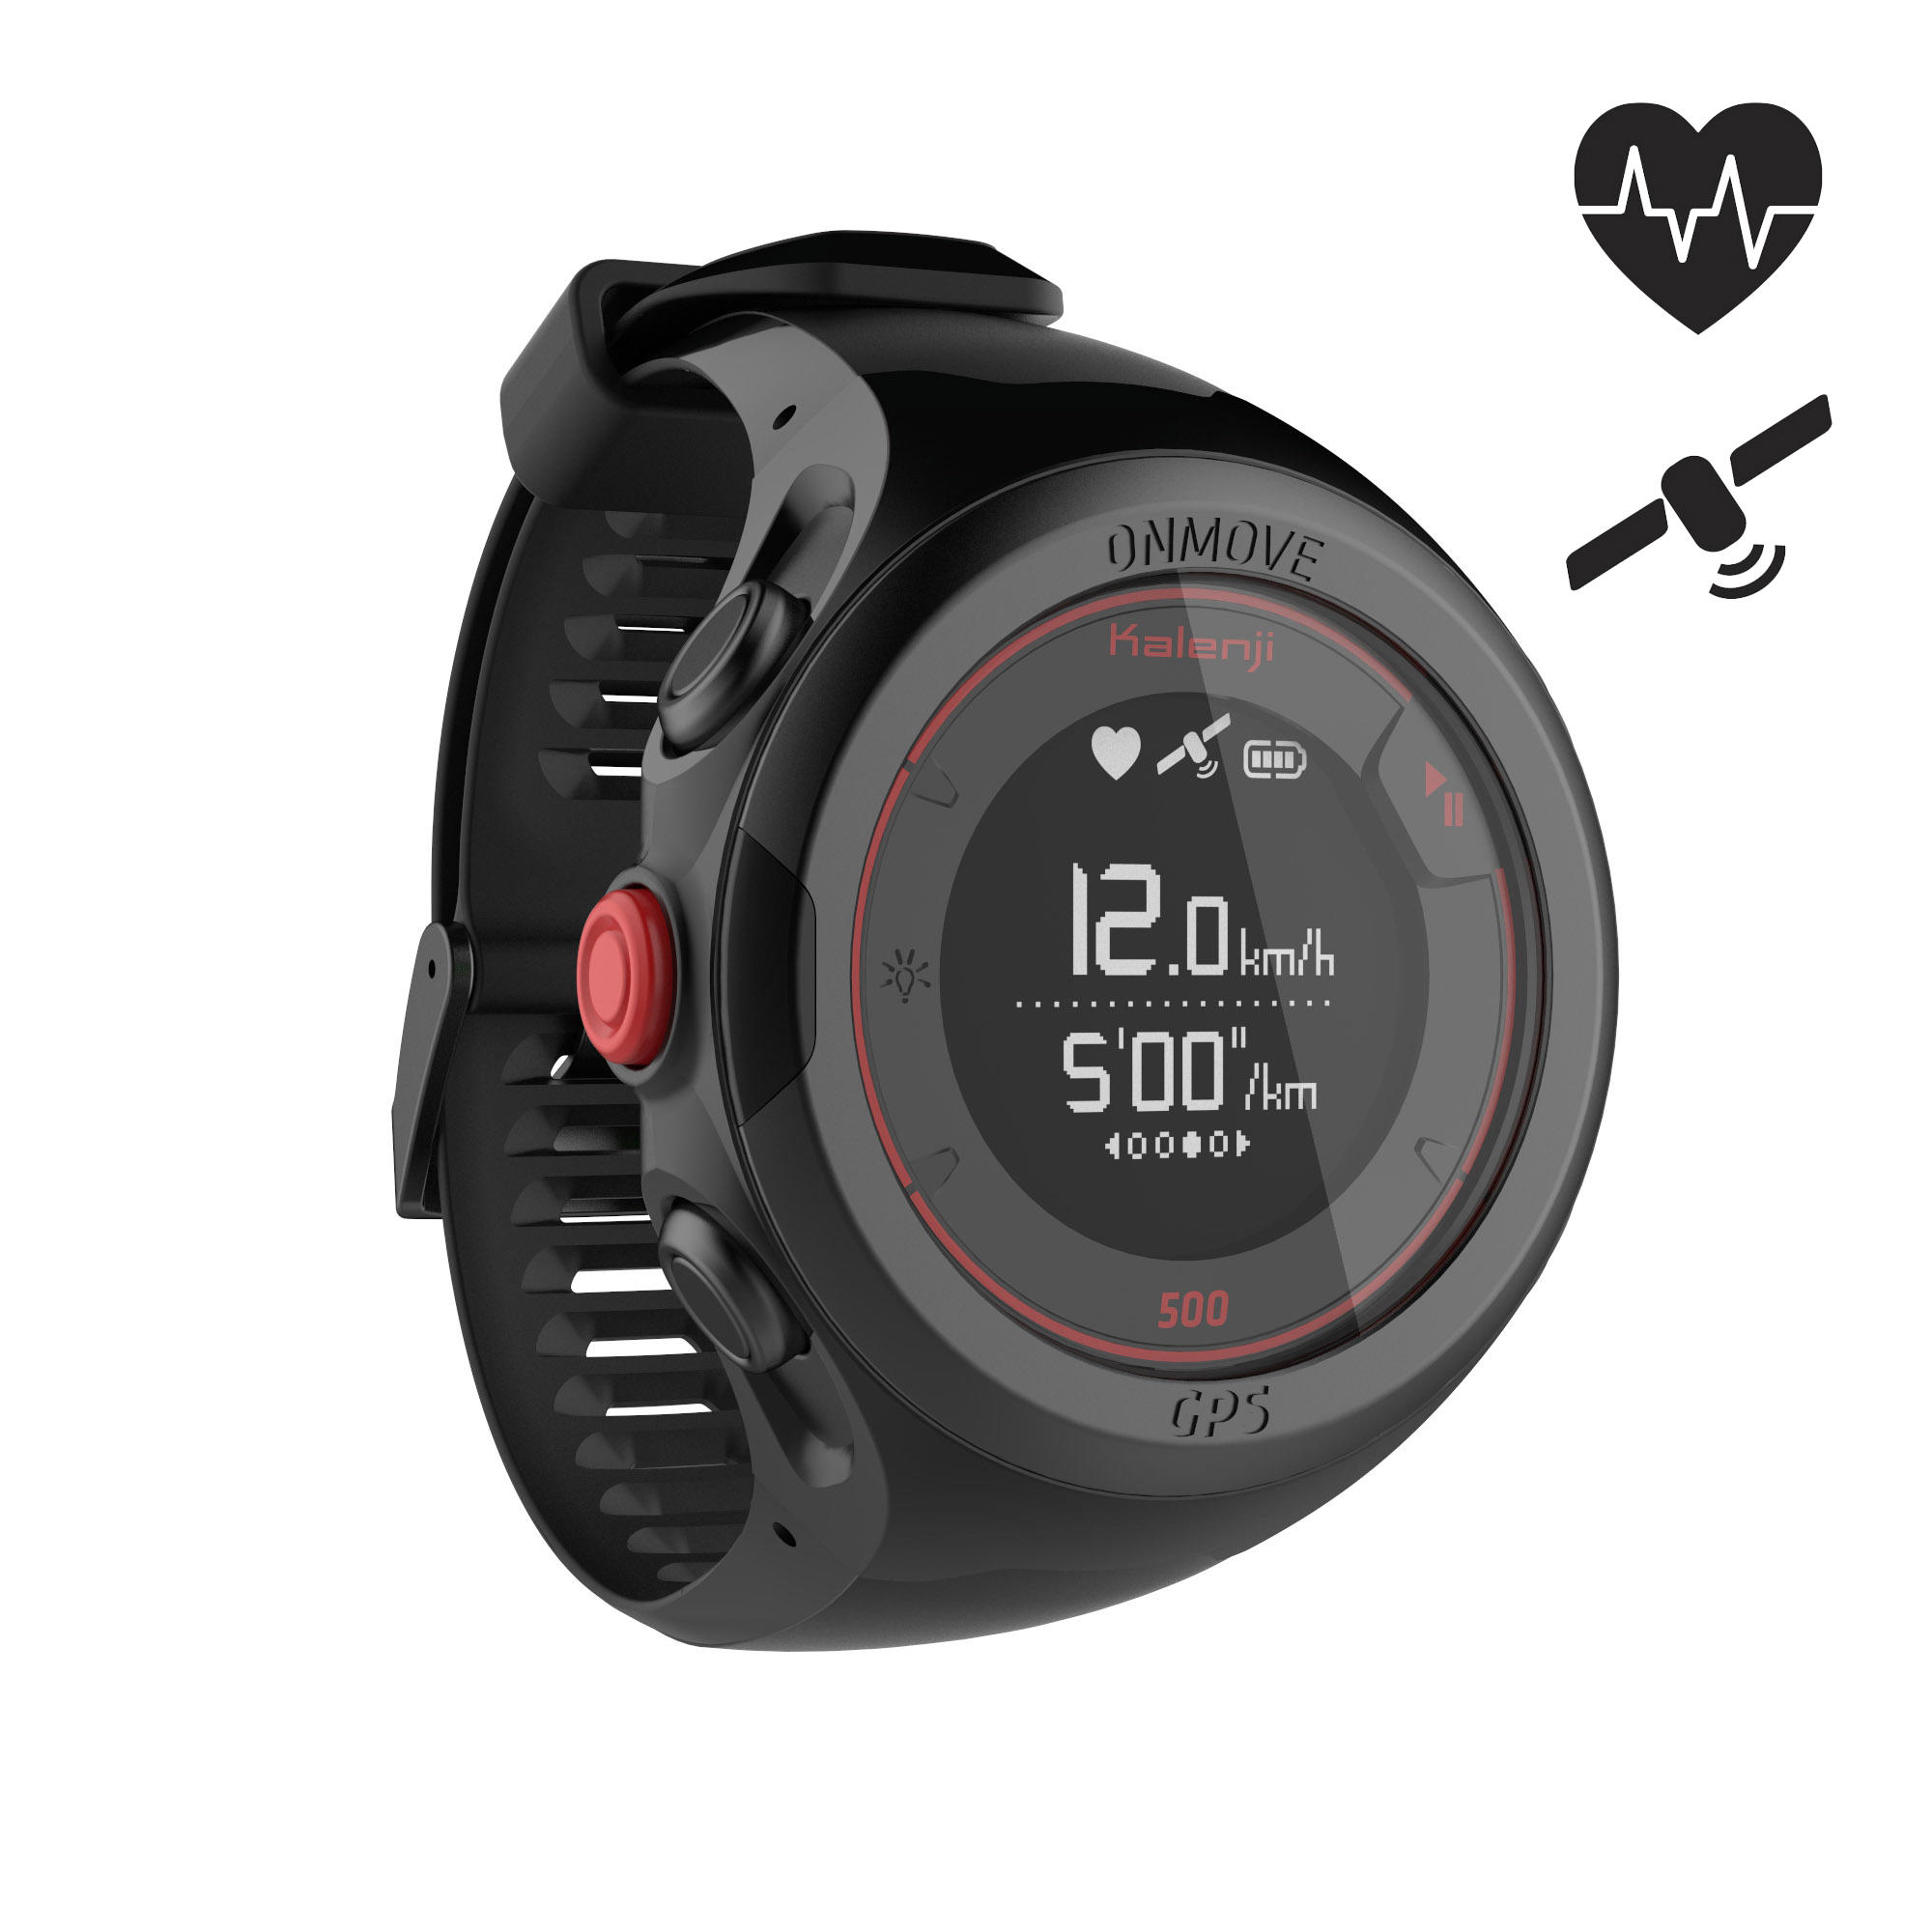 ONMOVE 500 GPS Cardio Running Watch - Black